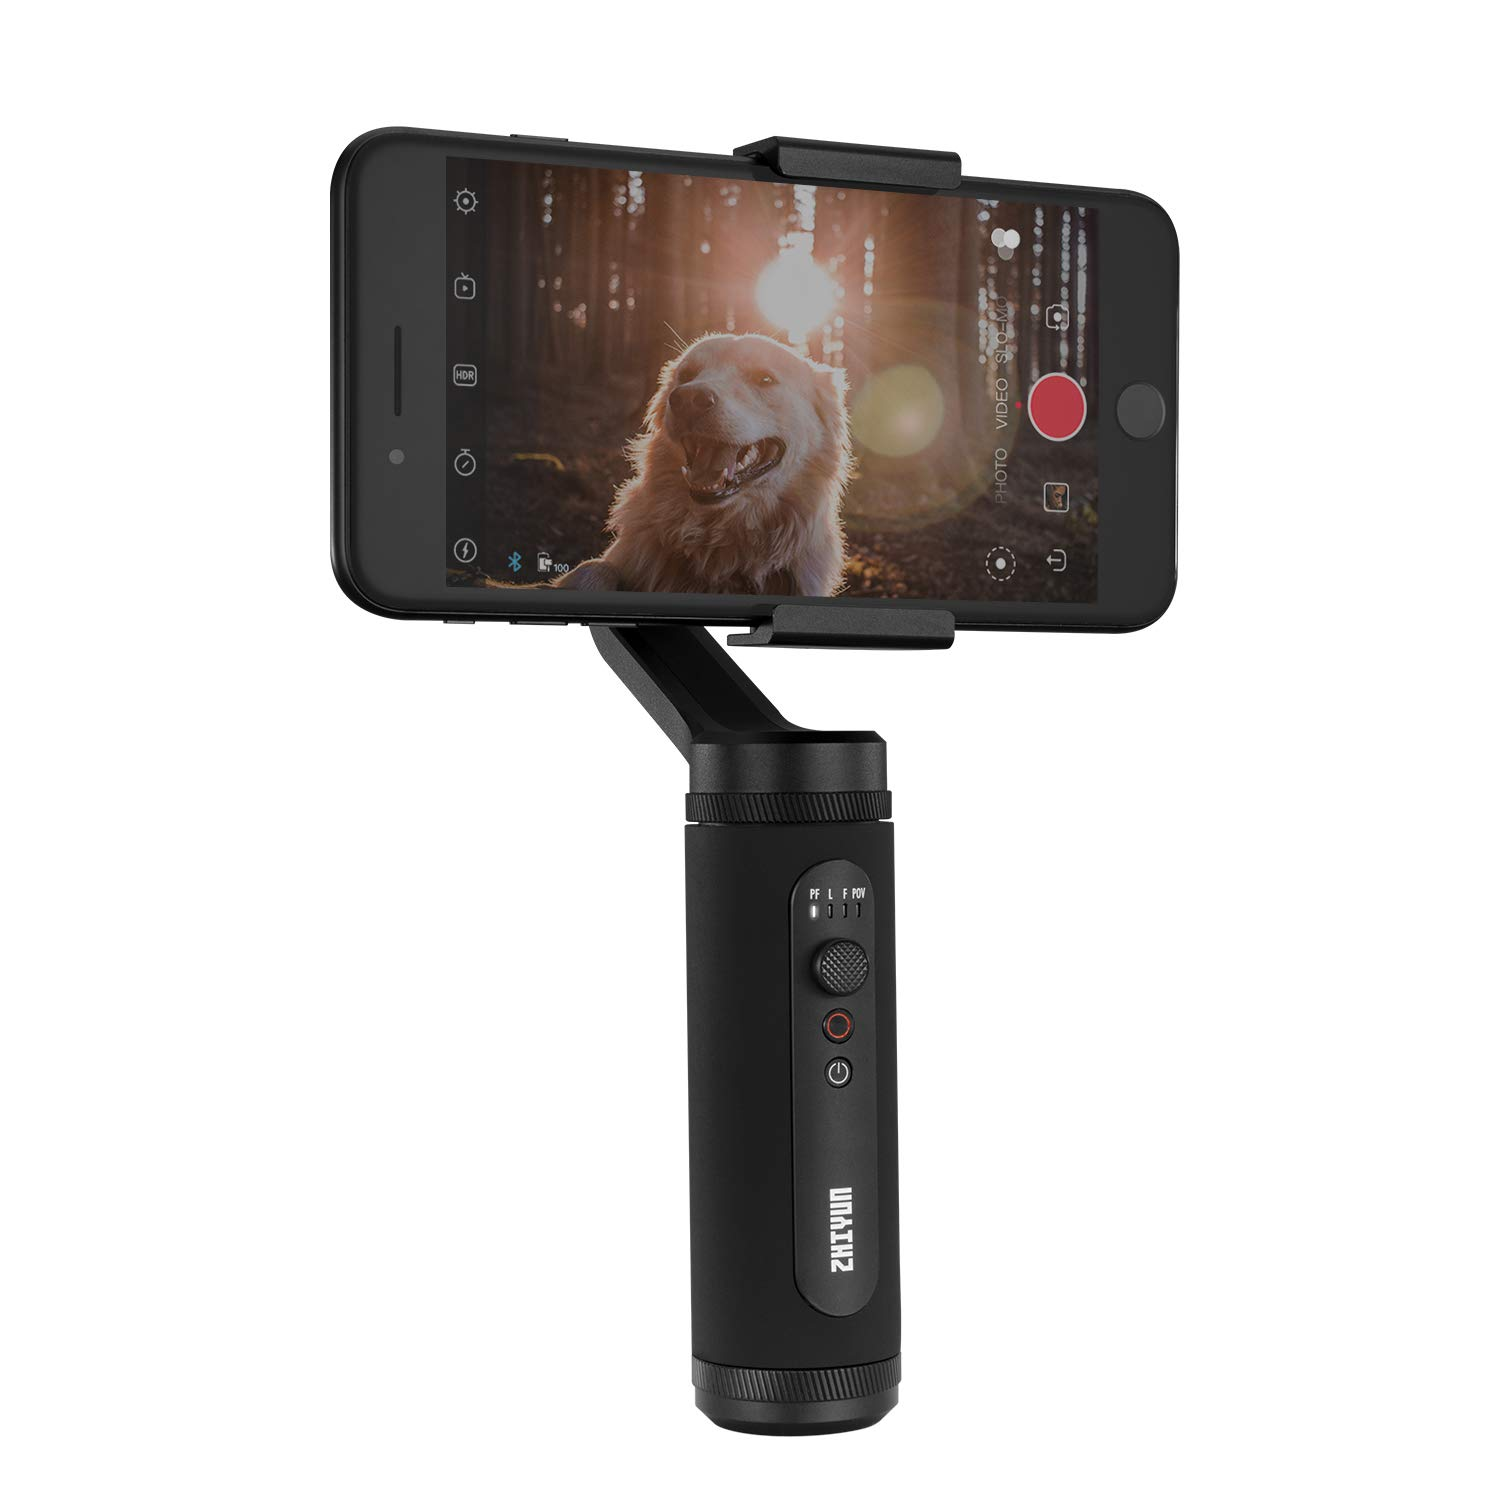 Zhiyun Smooth Q2 [Official] 3-Axis Handheld Smartphone Gimbal Stabilizer by zhi yun